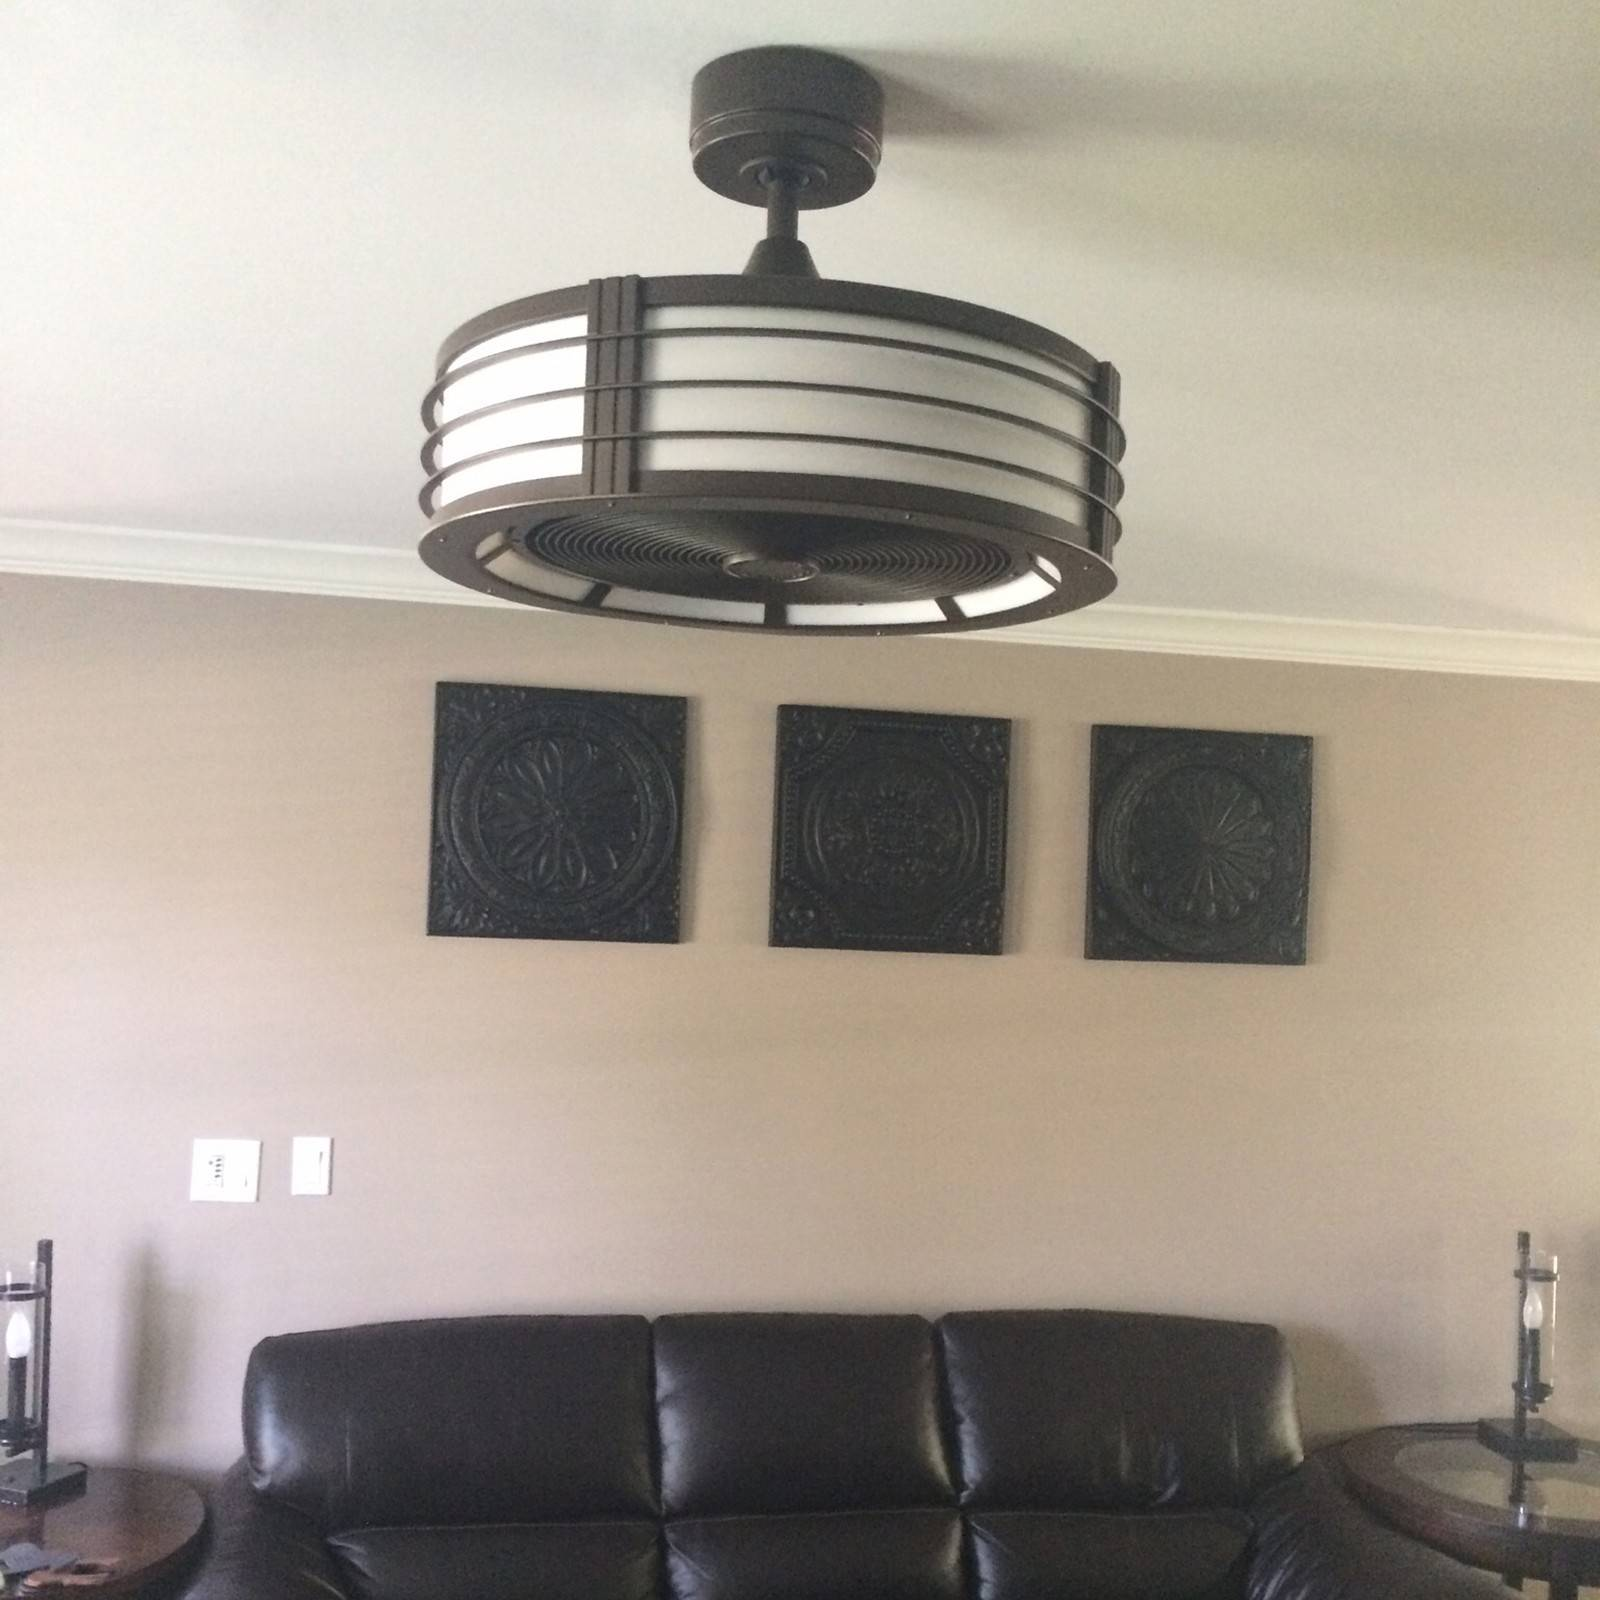 Some Of Todayu0027s Newest Fans Are Hidden Away And Look Like Nothing More Than Stylish  Ceiling